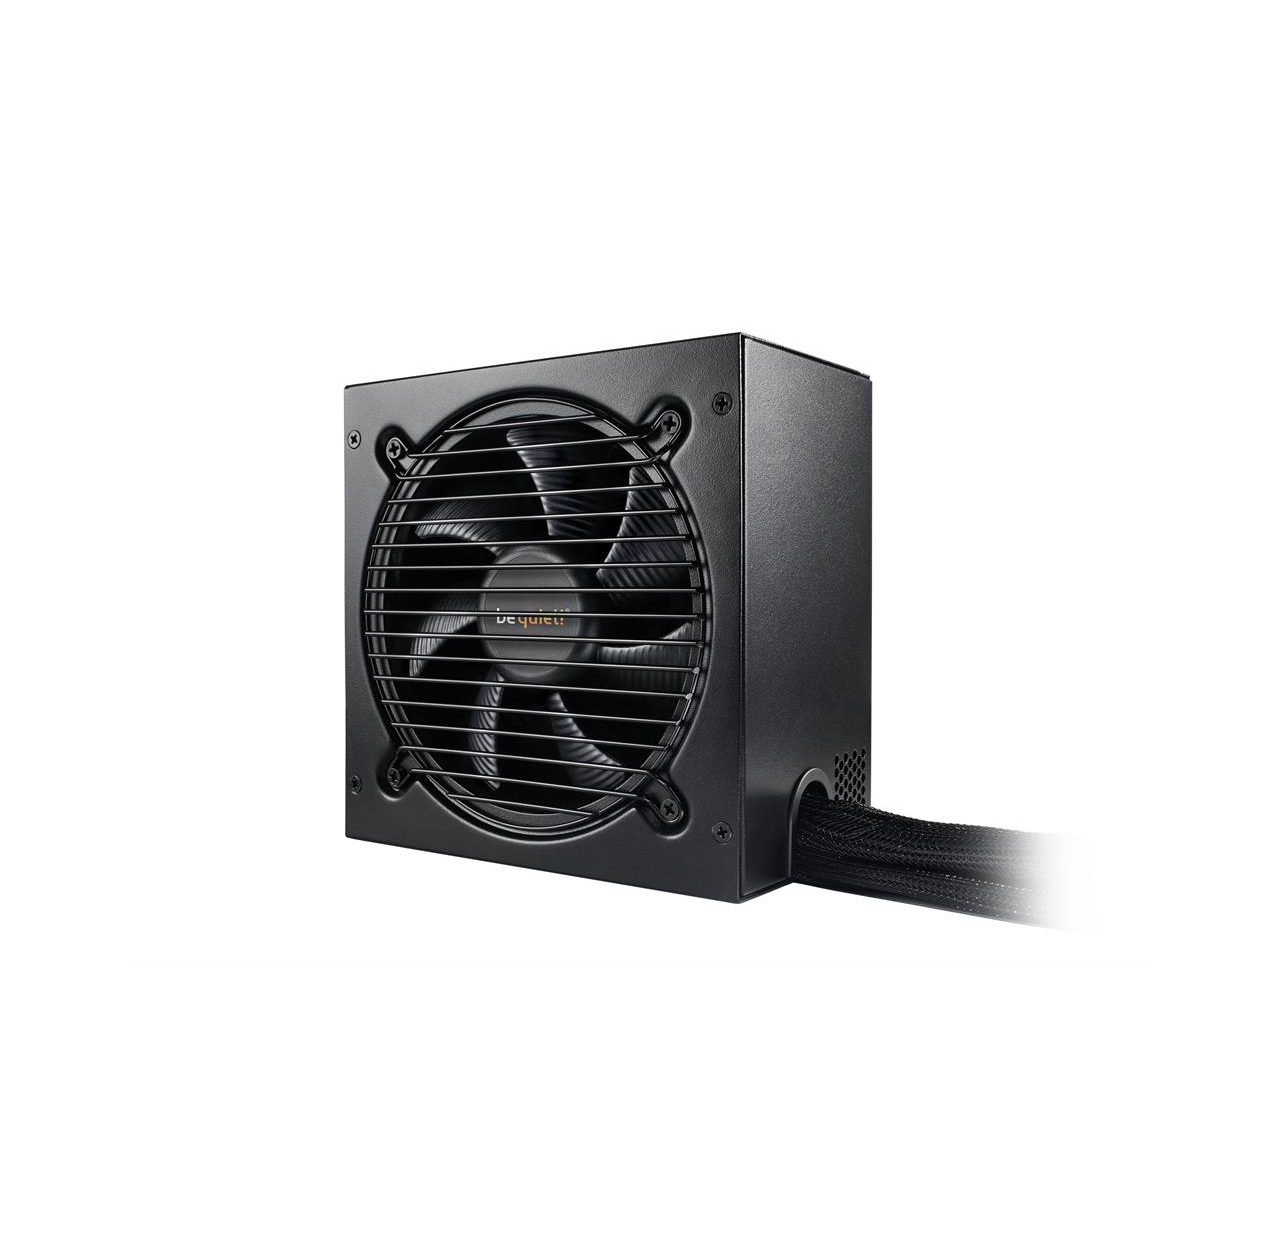 Zasilacz be quiet! Pure Power 11 300W, 80PLUS Bronze, activePFC